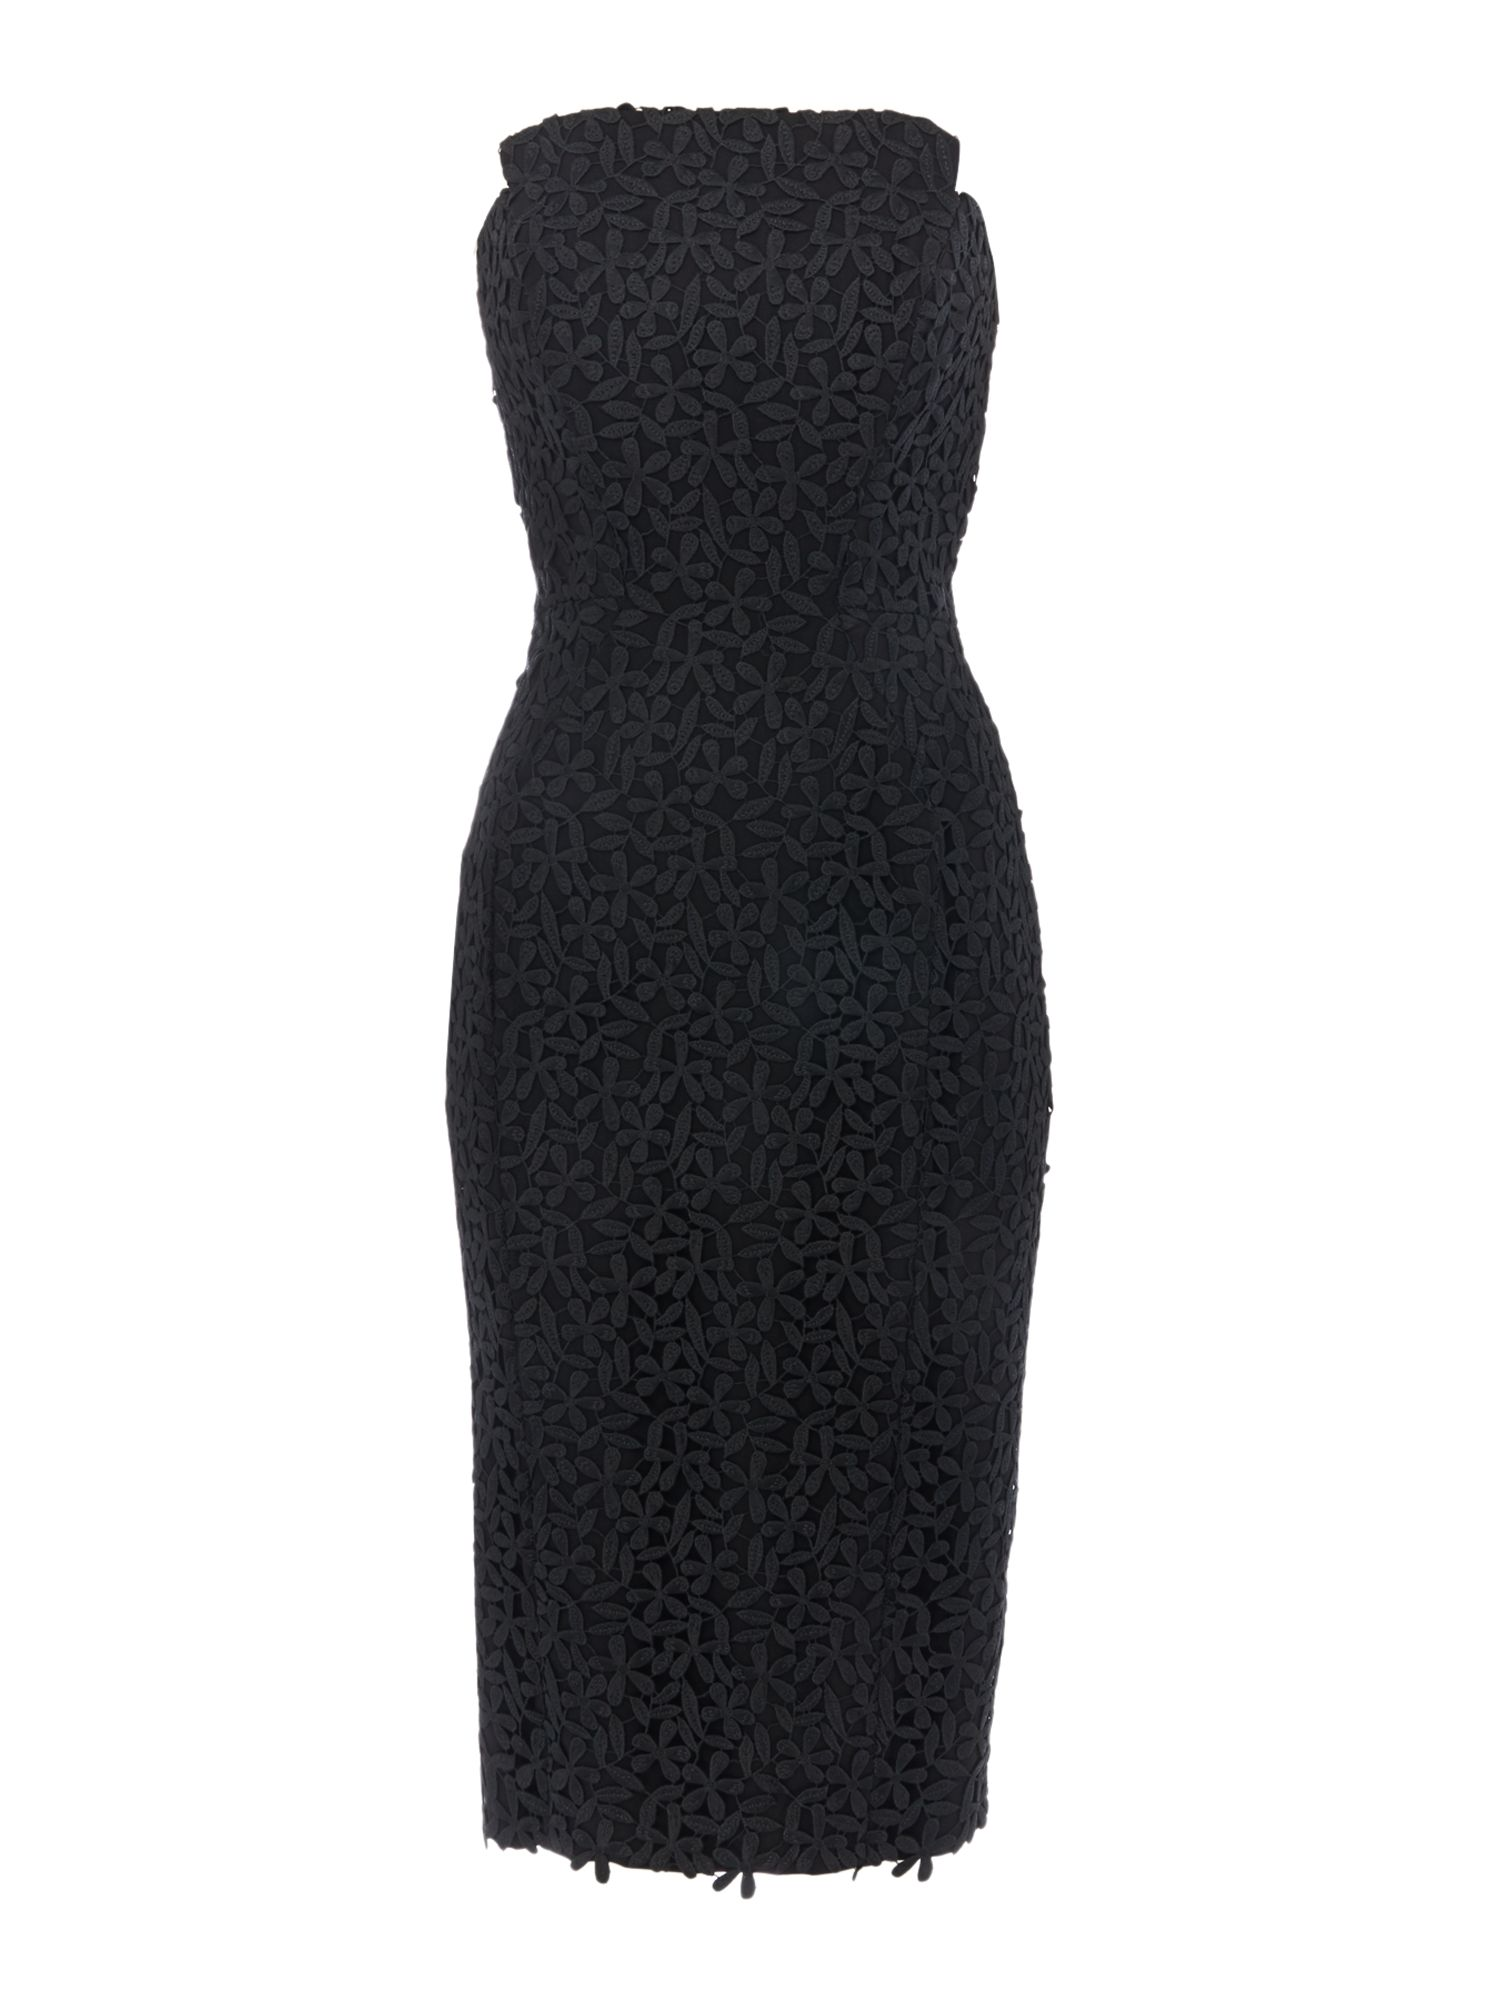 Jill Jill Stuart Strapless floral lace midi dress, Black